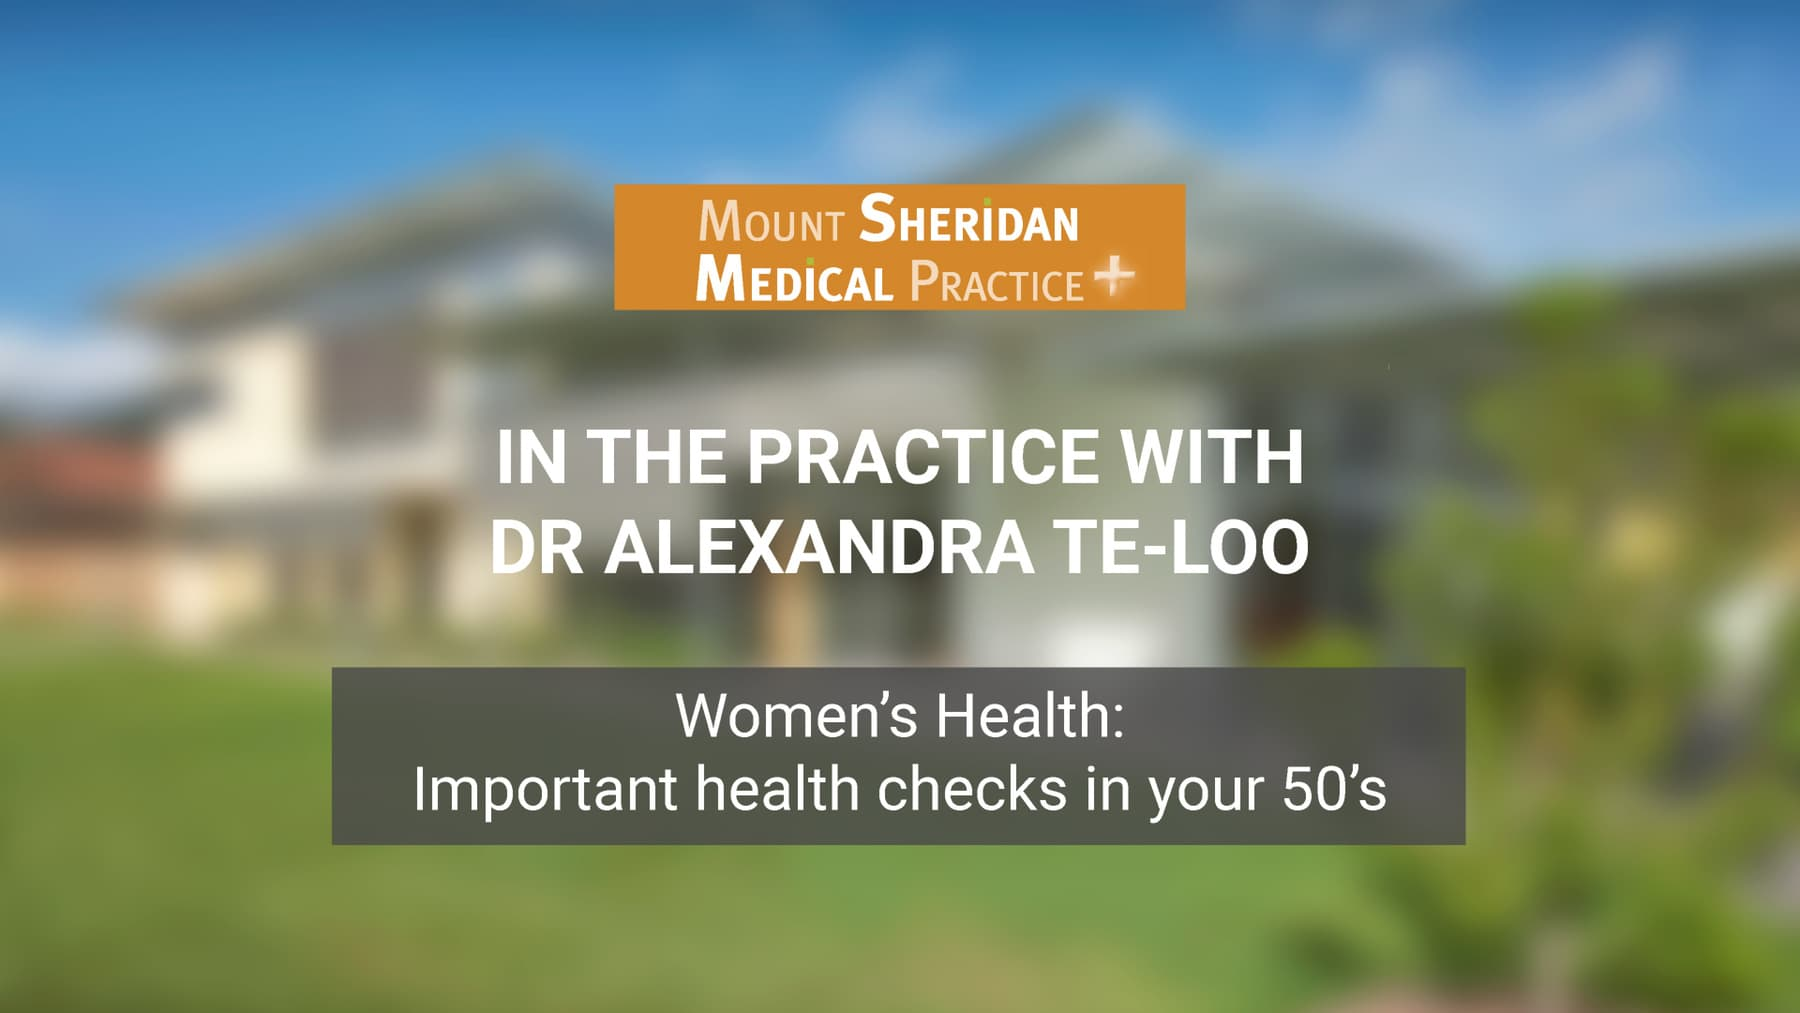 Women's Health: Important health checks in your 50's